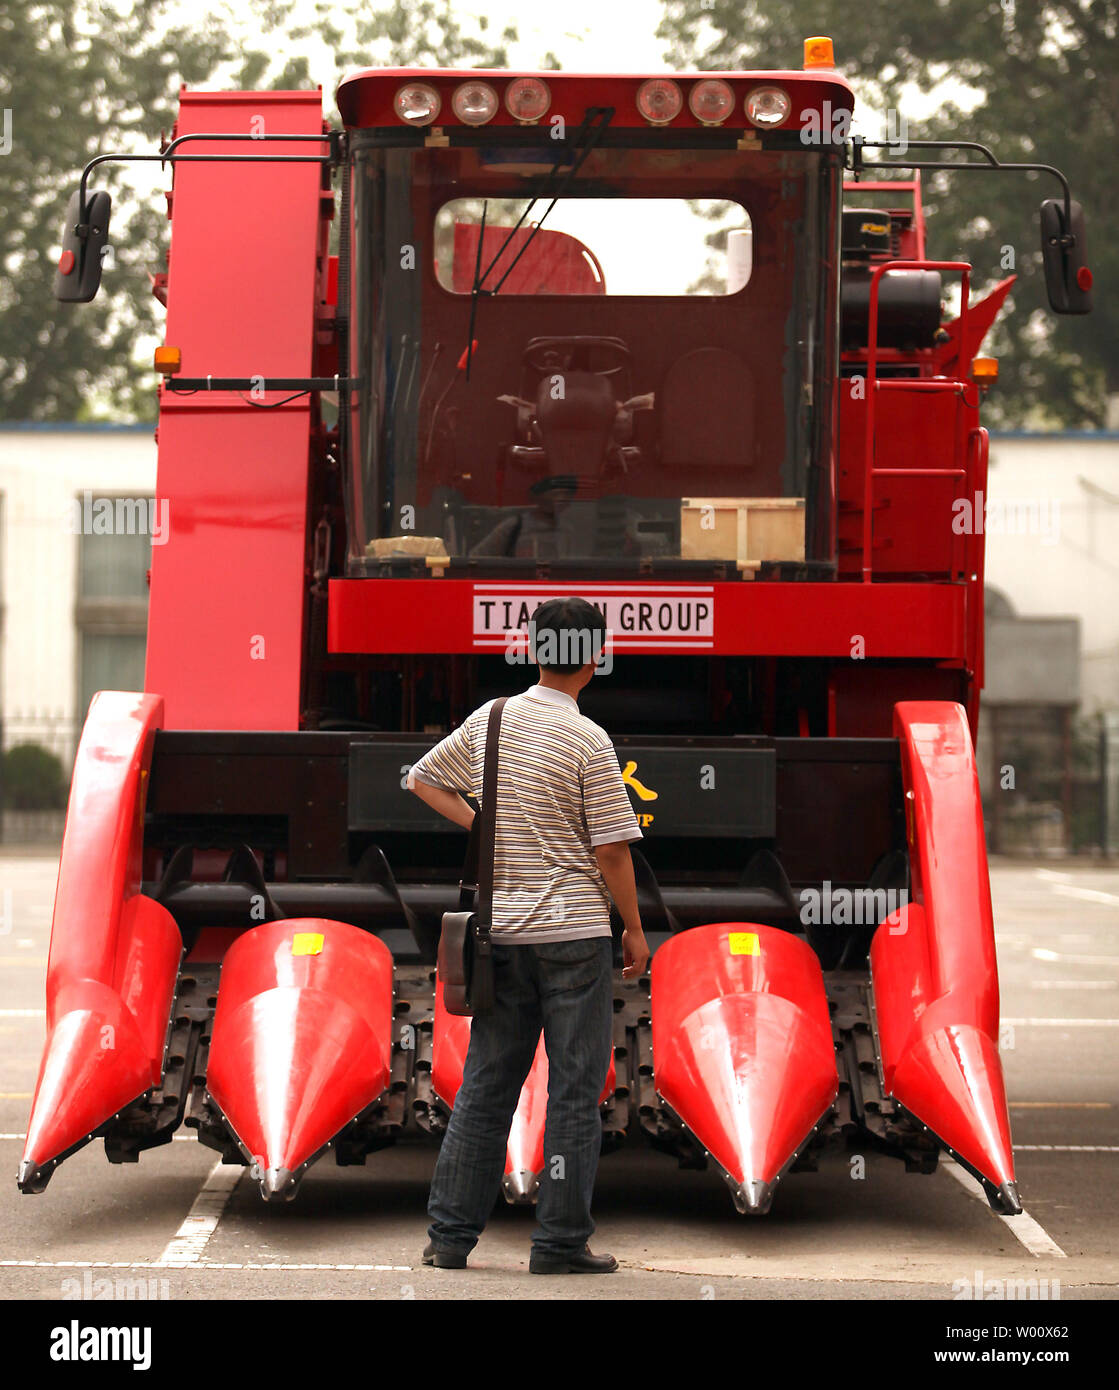 A Chinese man looks at a made-in-China combine harvester on